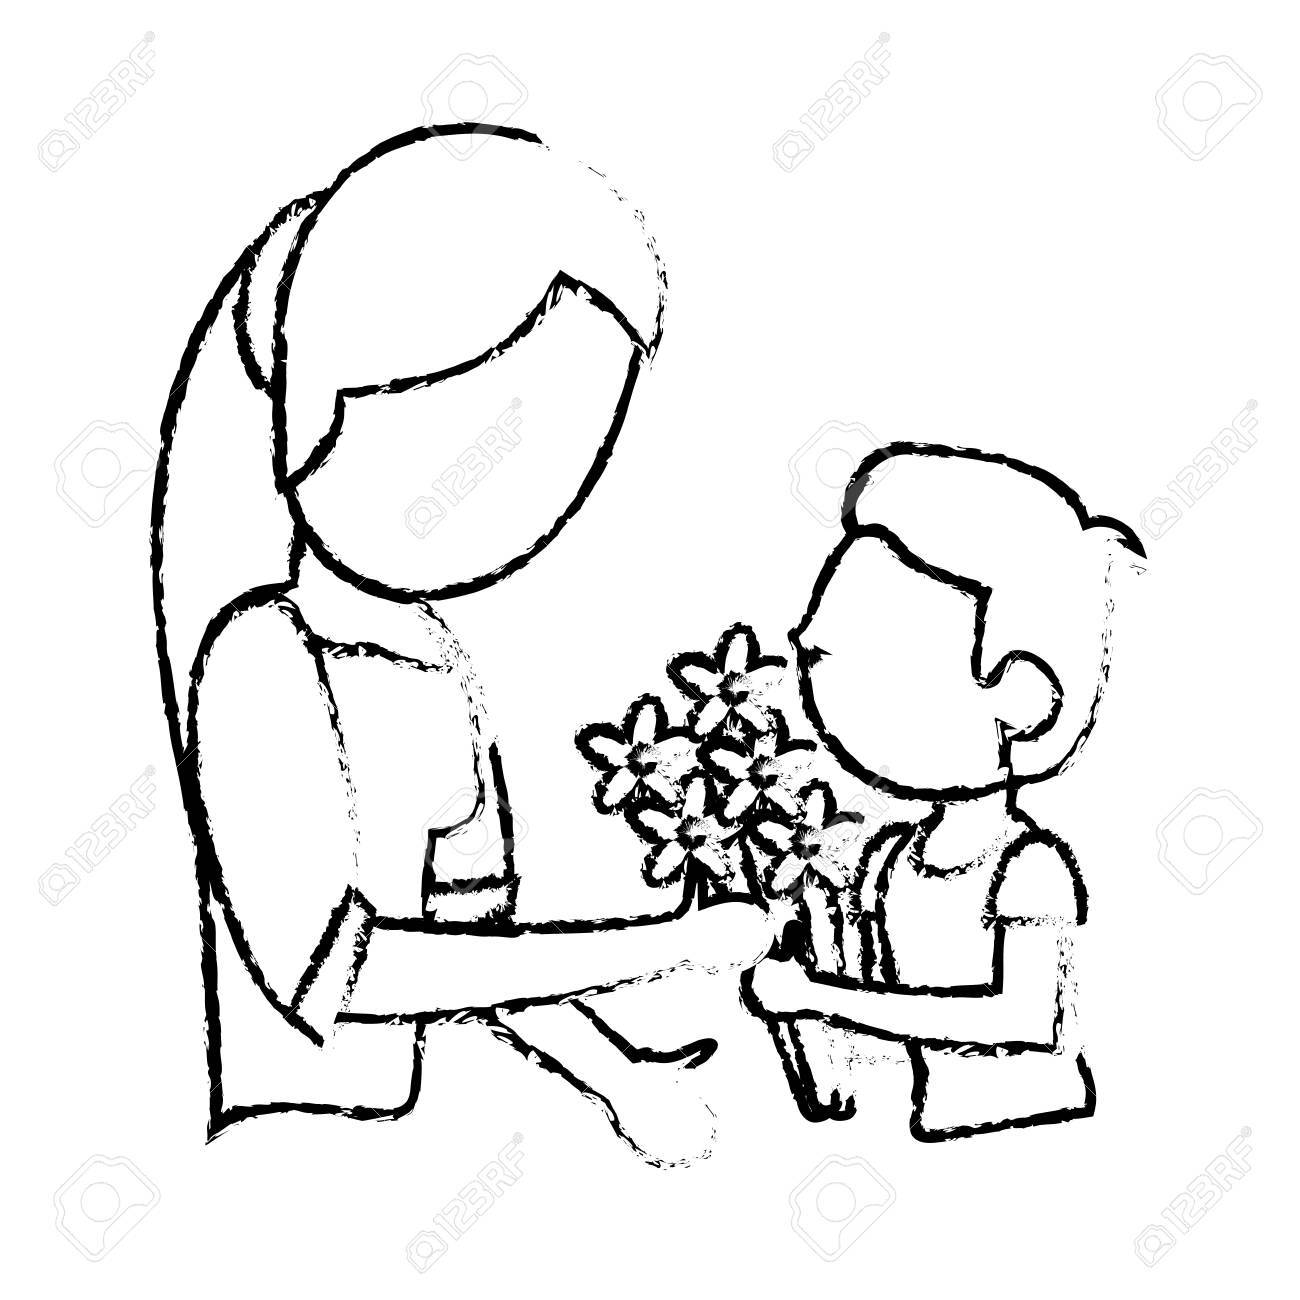 Sketch mother and son bouquet flowers vector illustration stock vector 76085900